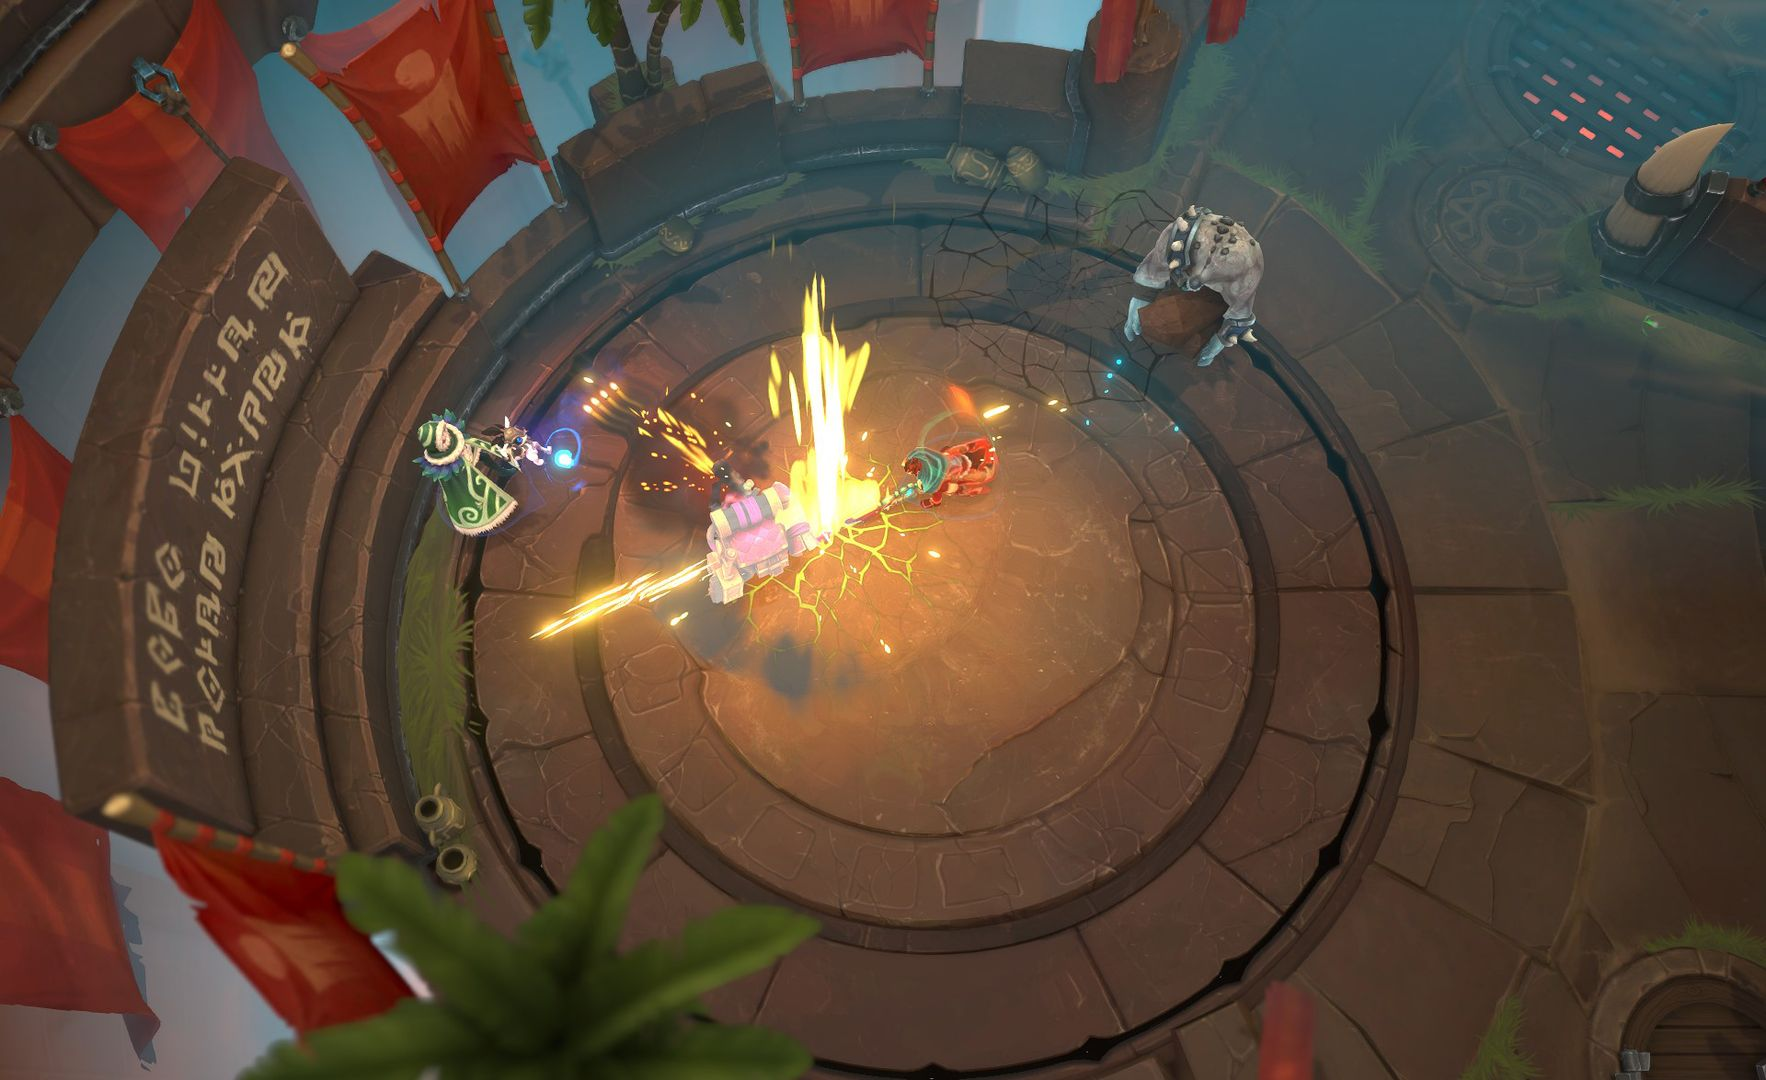 Arena battler Battlerite gets free to play launch date - Free week incoming""